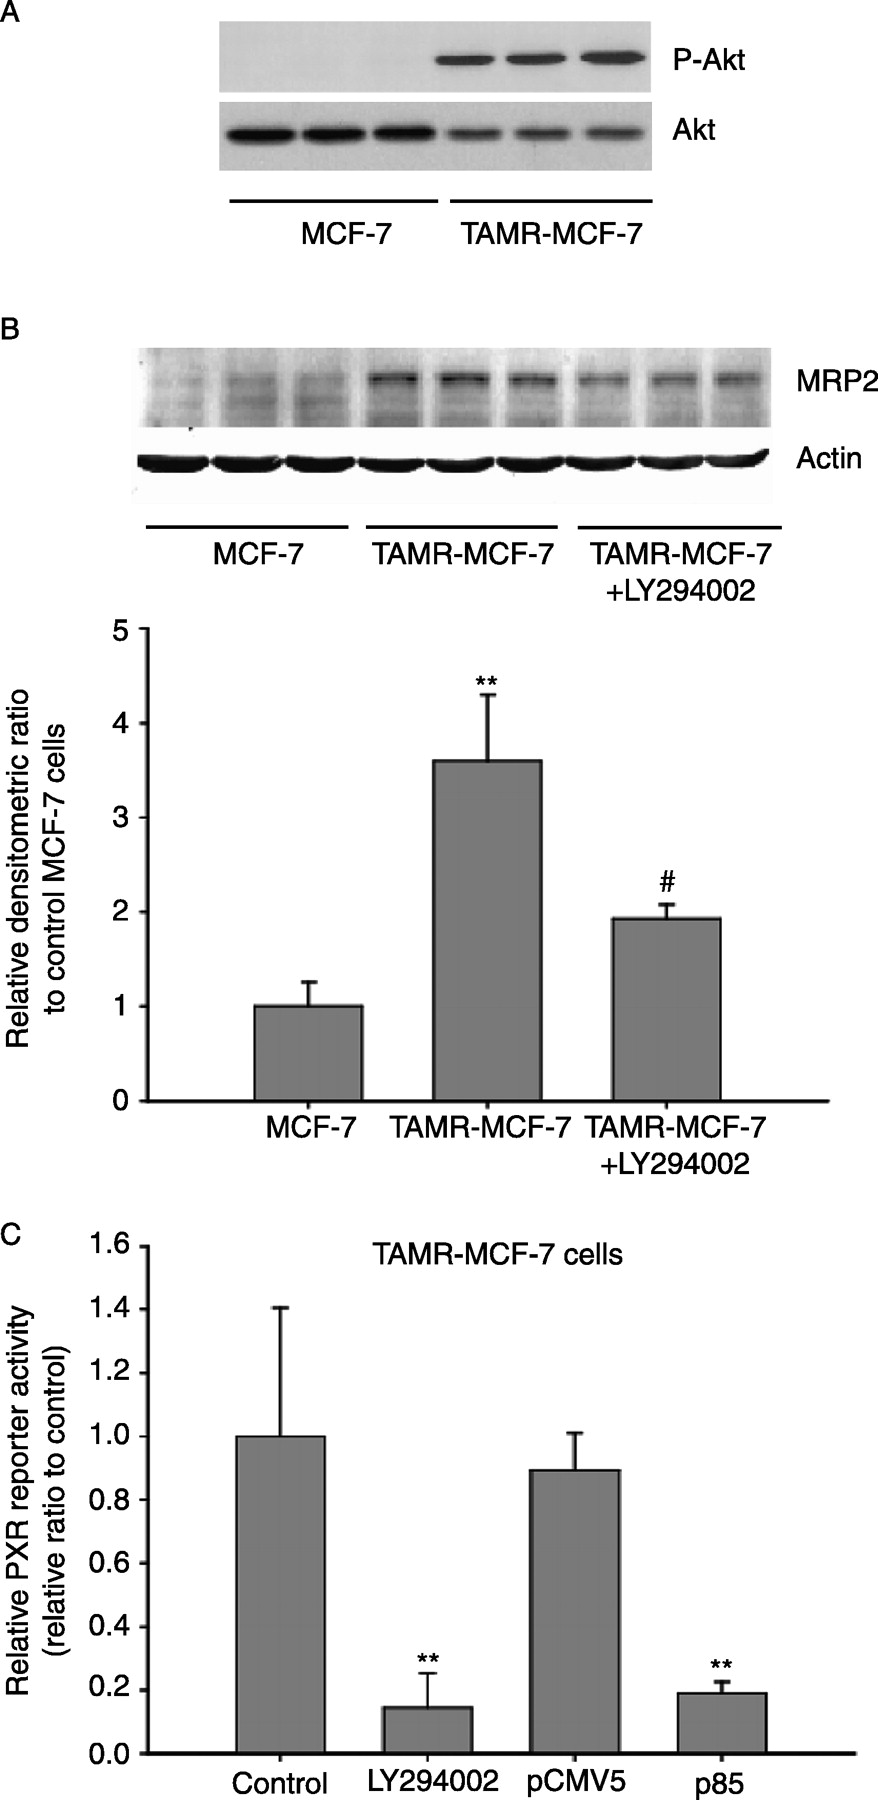 hight resolution of pi3 kinase dependent mrp2 expression in tamr mcf 7 cells a akt phosphorylation the extent of pi3 kinase activation was assessed by immunoblotting of